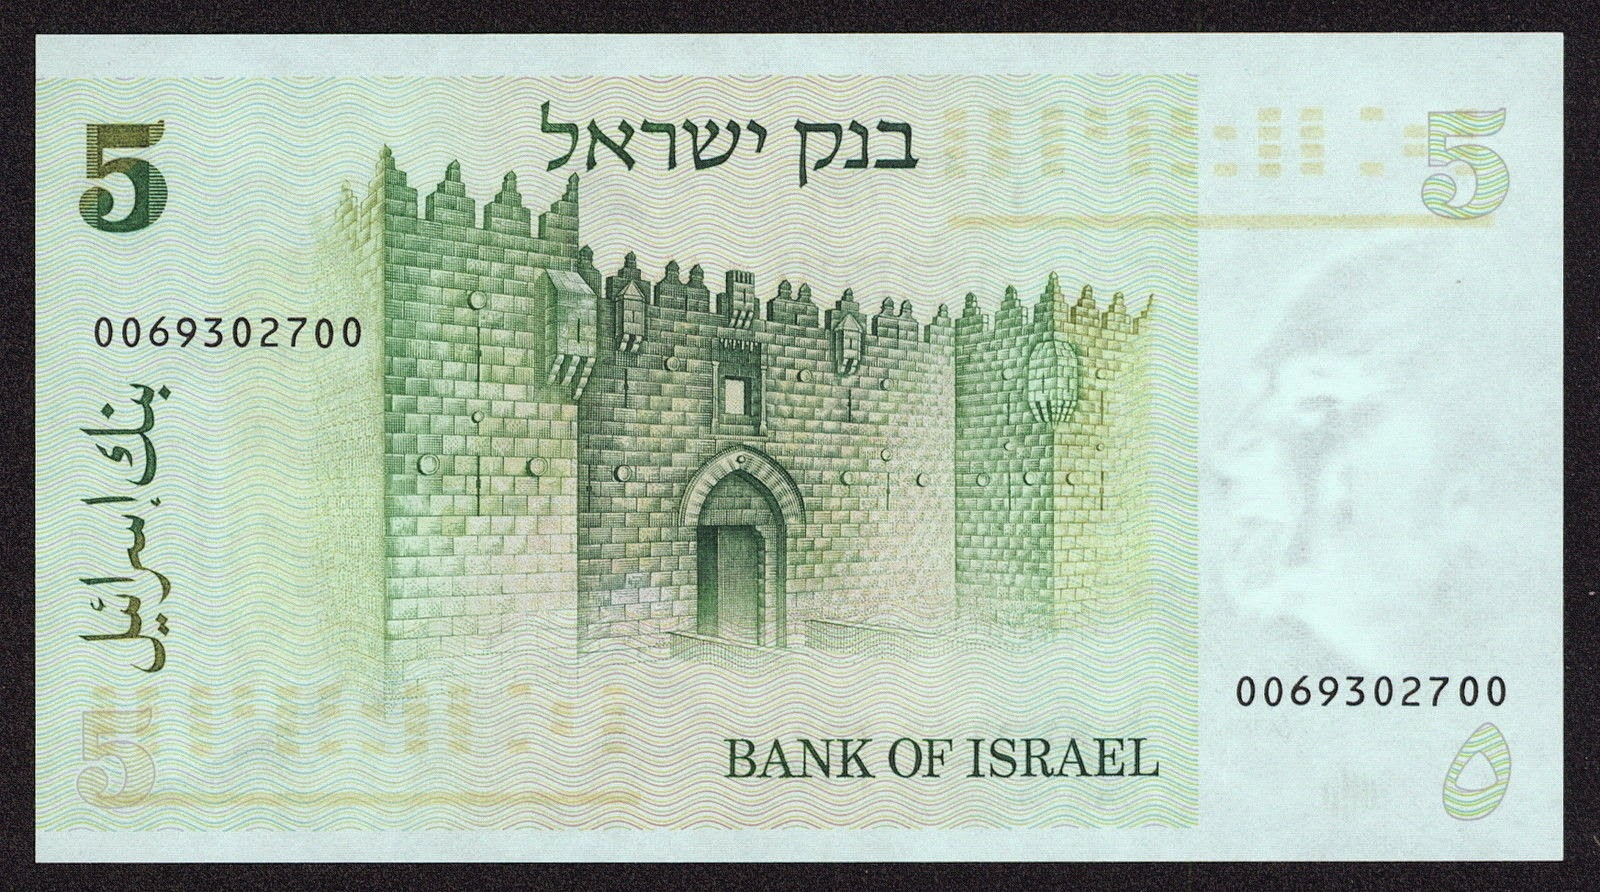 Israeli currency money 5 Sheqalim banknote 1978 Damascus Gate in the Old City of Jerusalem